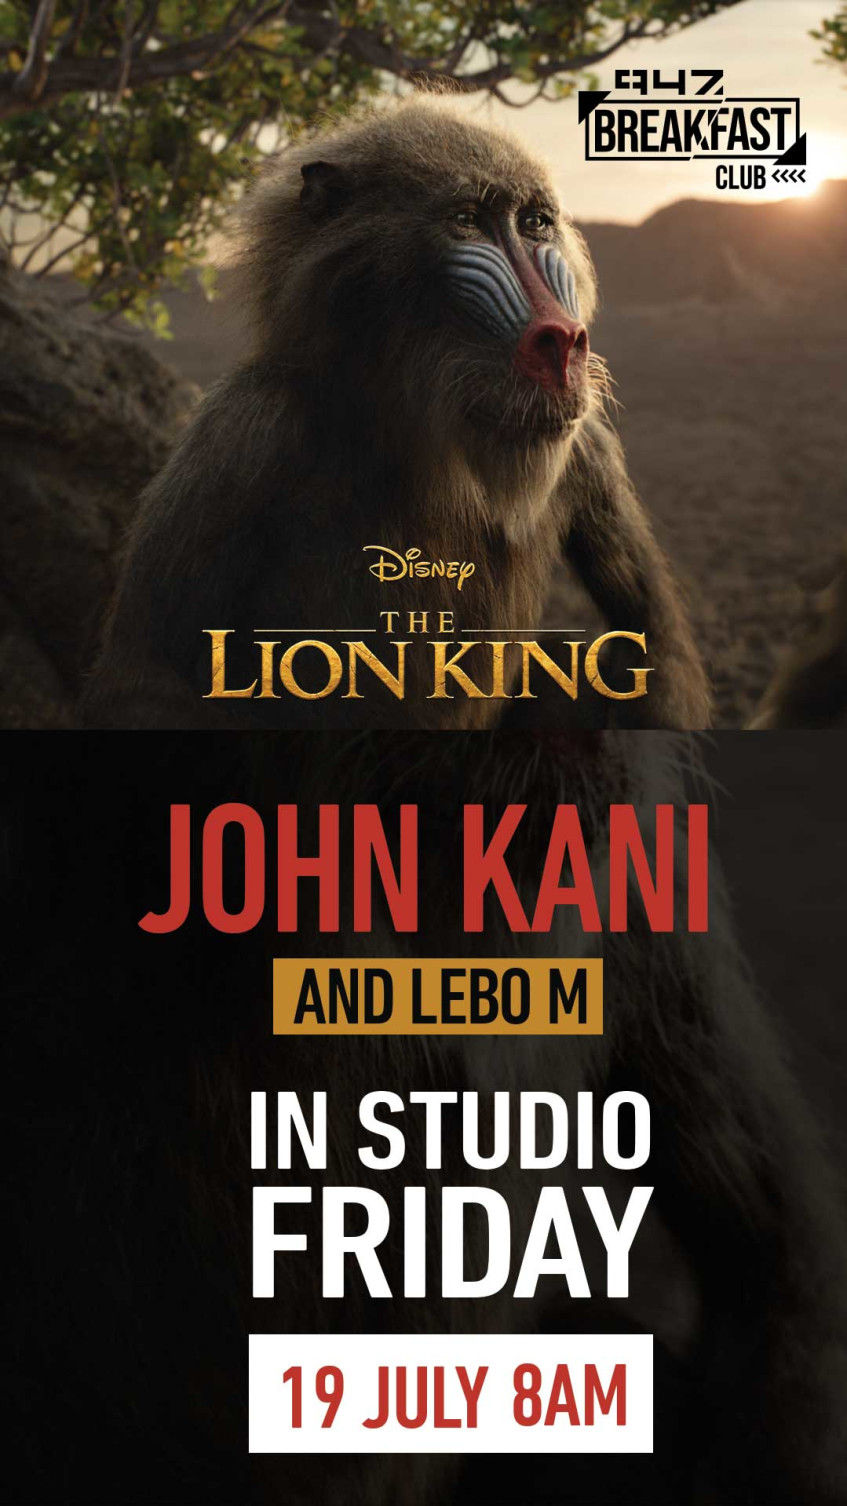 Legends John Kani and Lebo M chat the Lion King with the 947 Breakfast Club